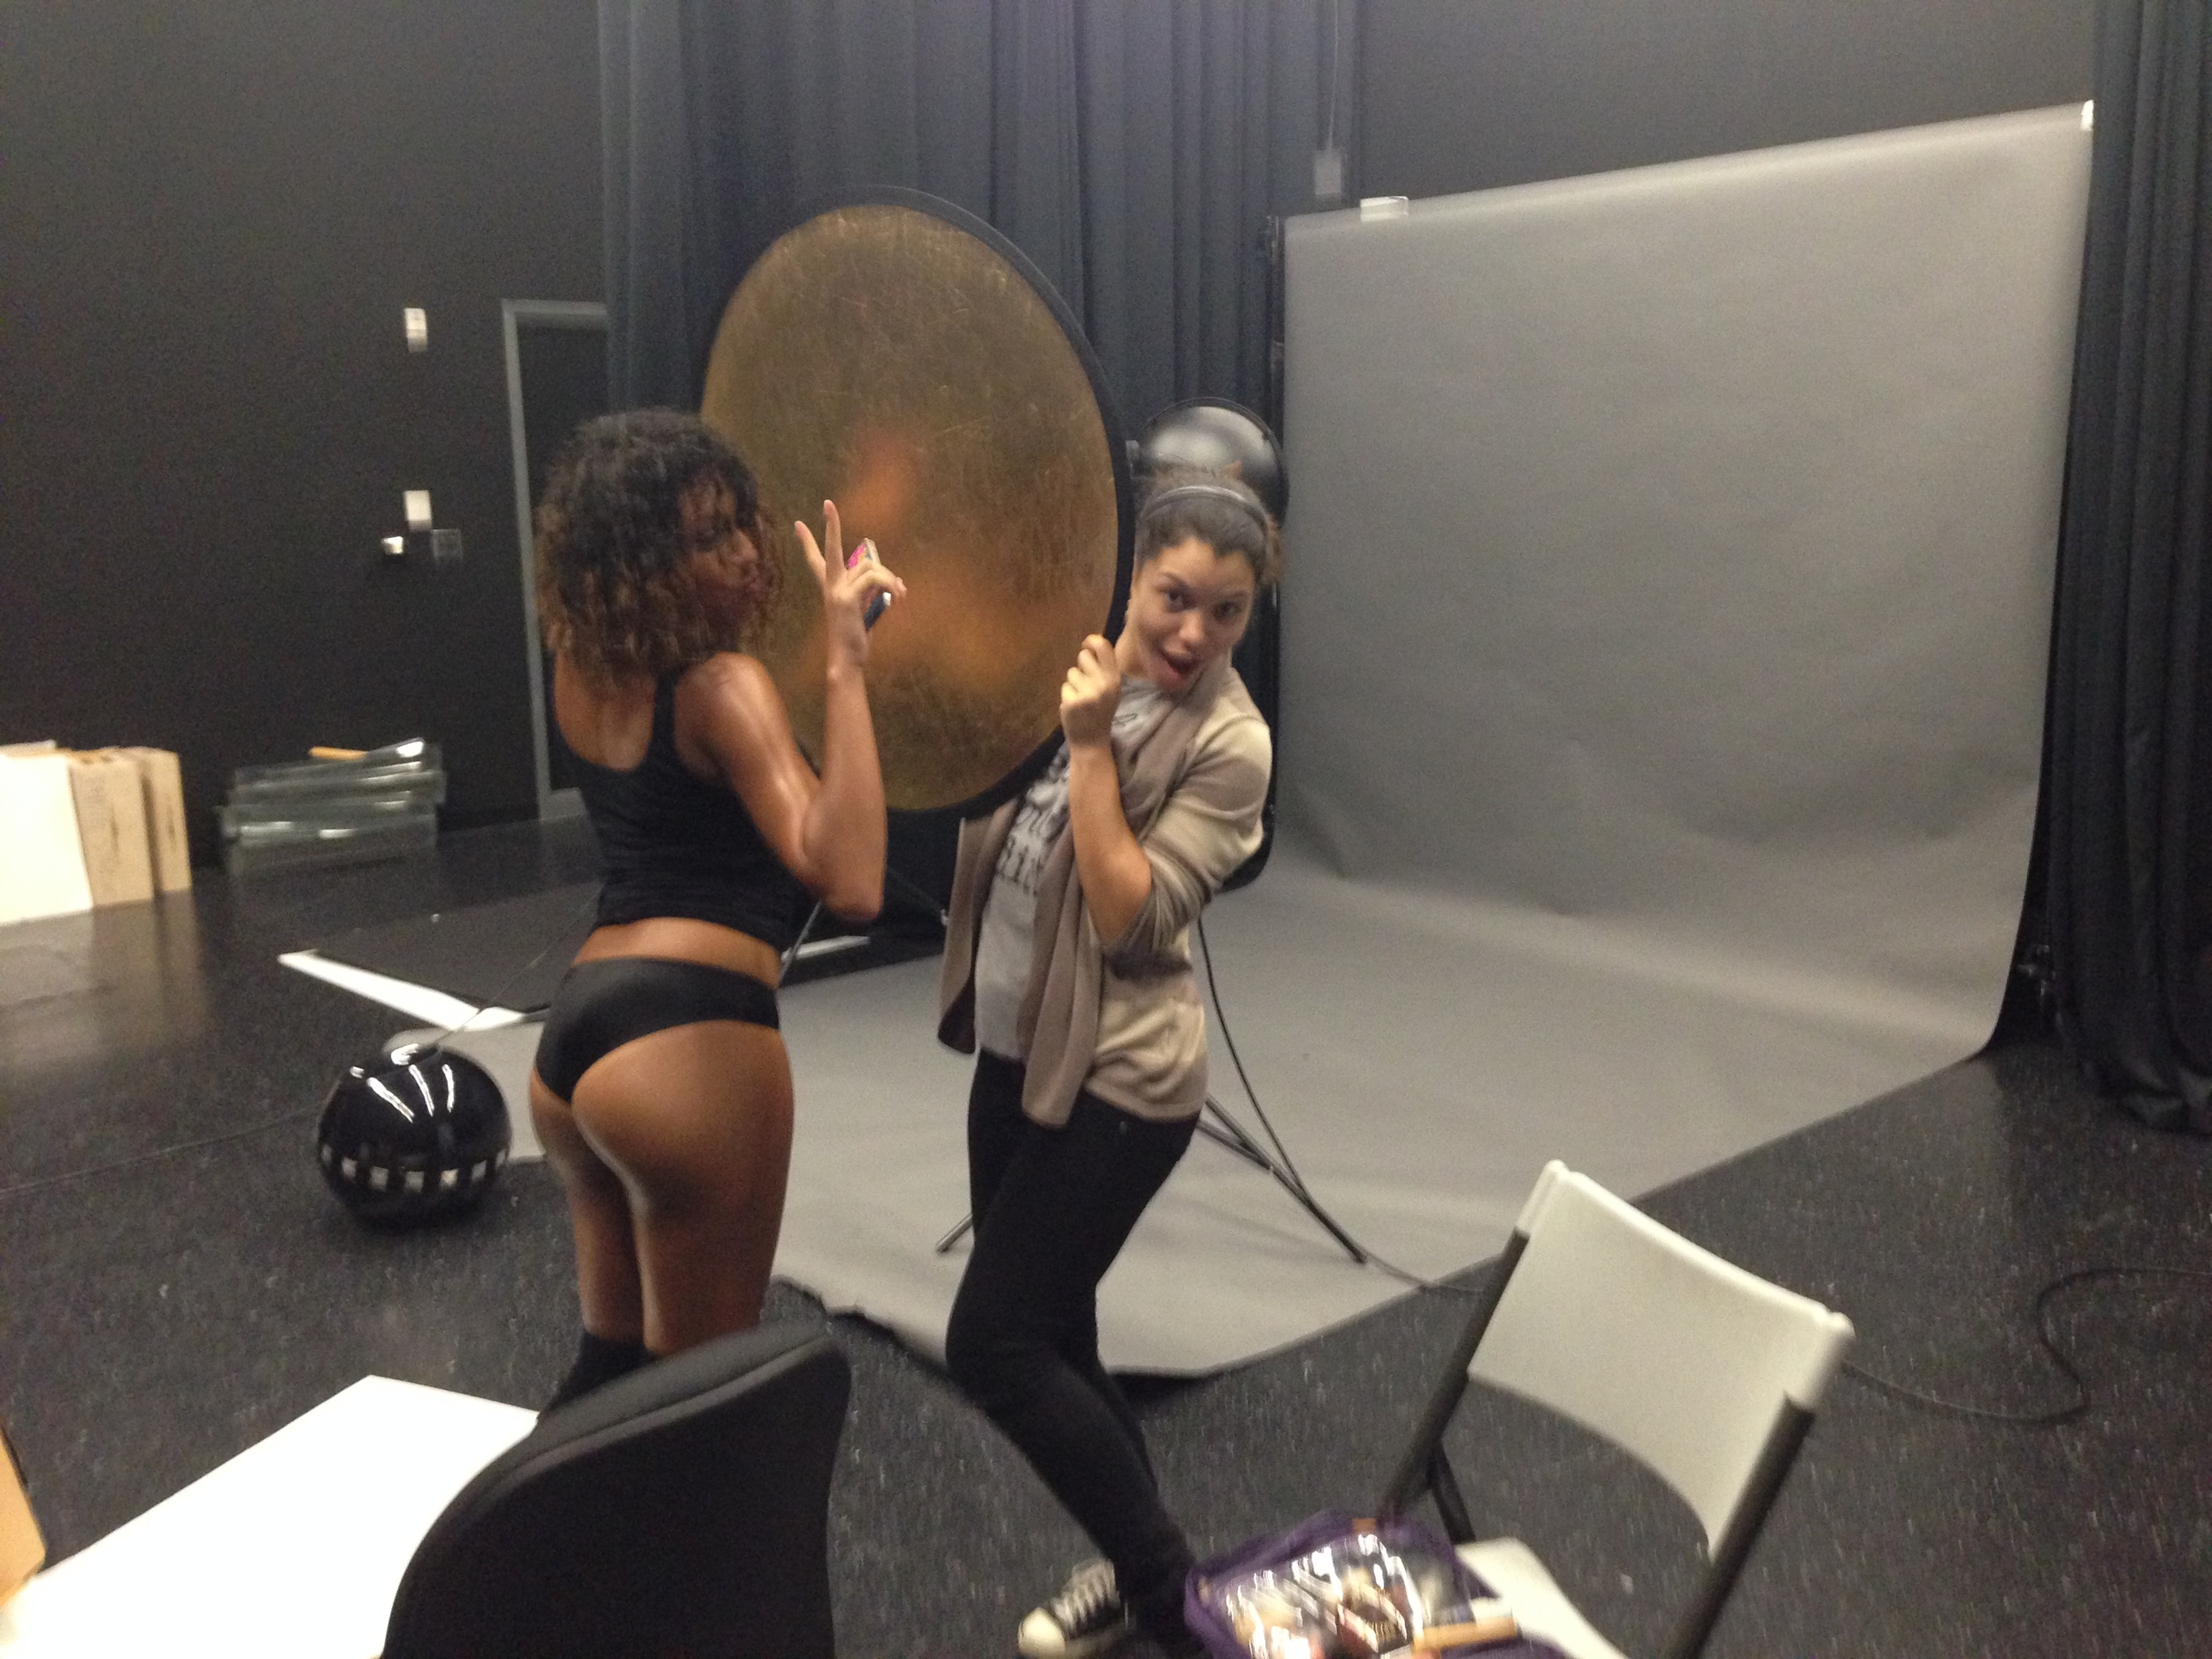 behind-the-scenes-FLASH-DANCE-fashion-photography-illy-perez18.jpg